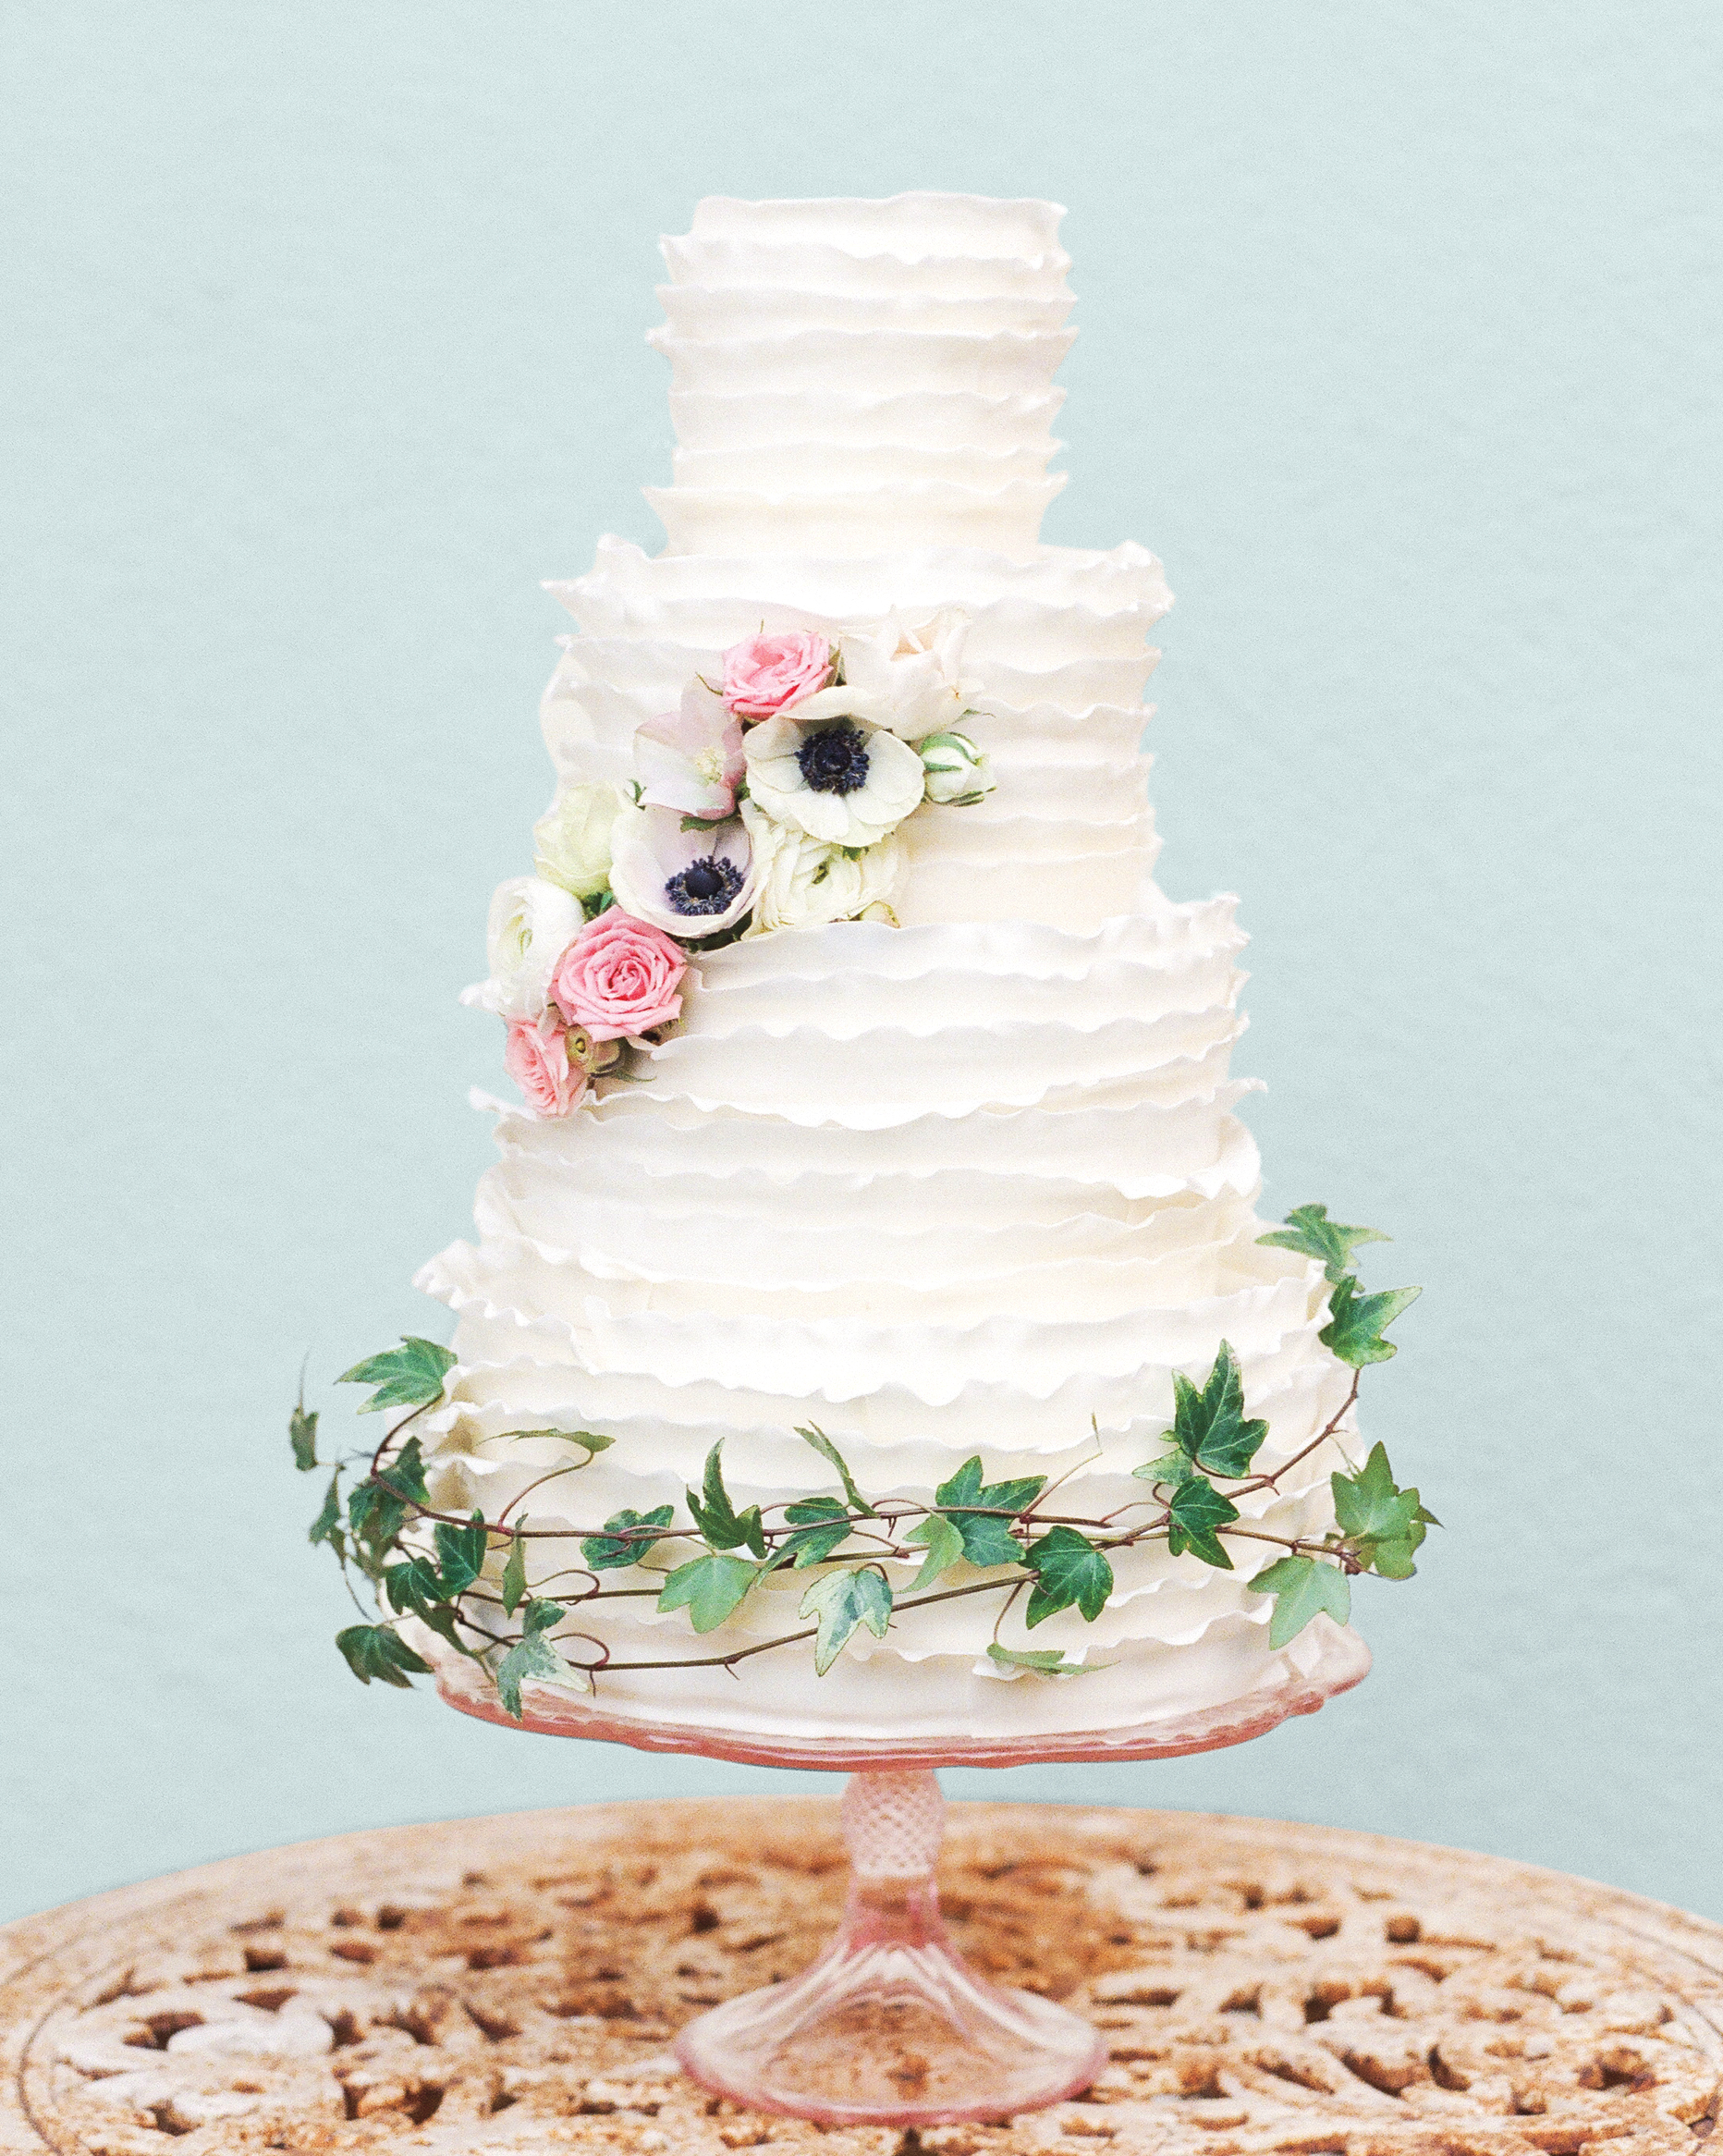 Trending Now: Deckle-Edged Wedding Cakes